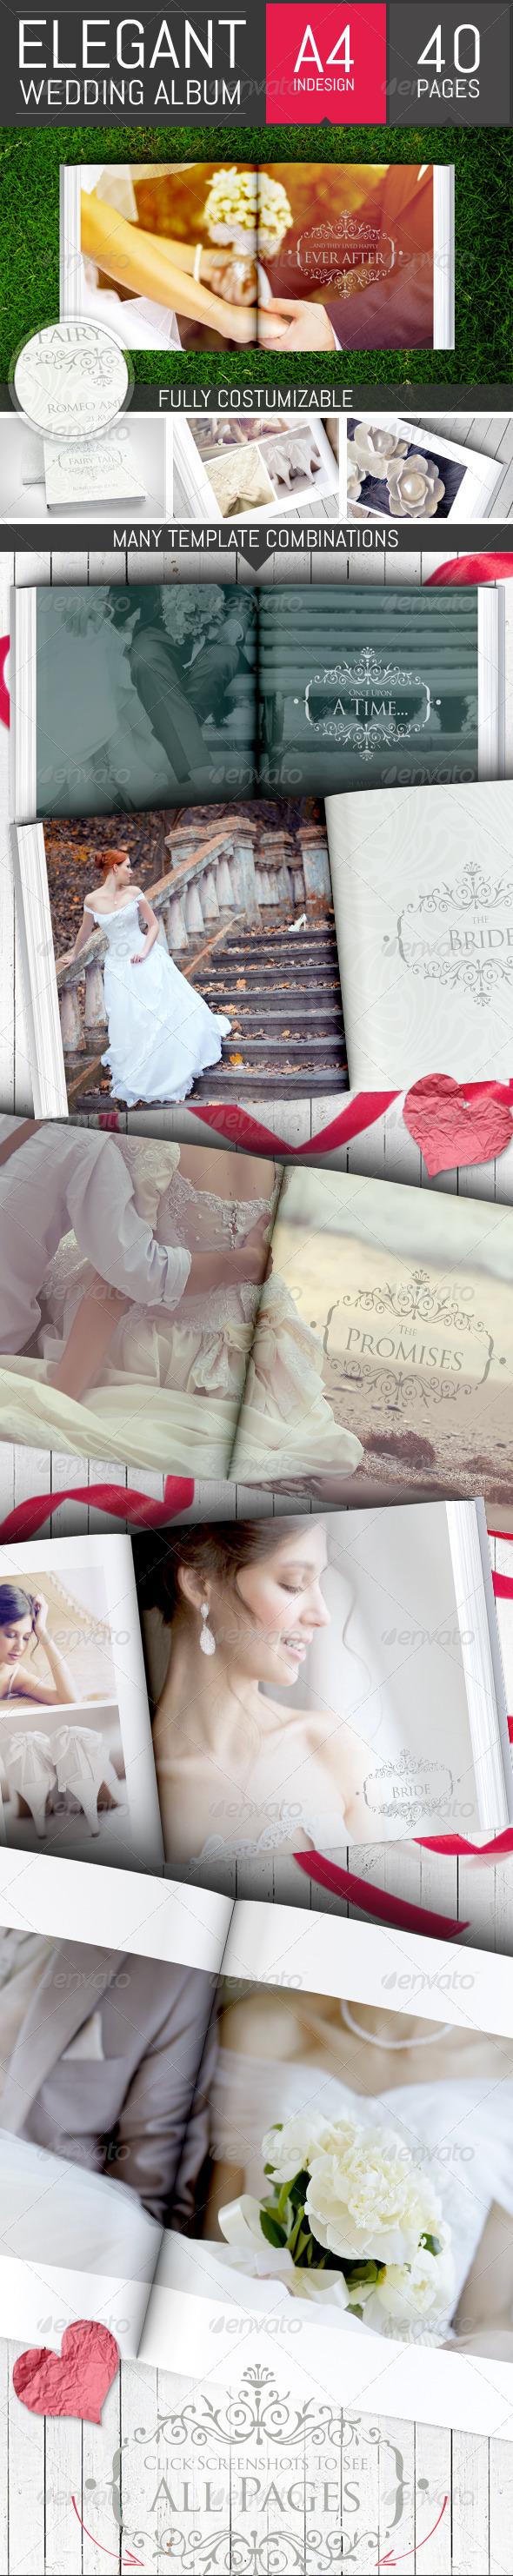 GraphicRiver Elegant Square Wedding Photo Album Template 8783186